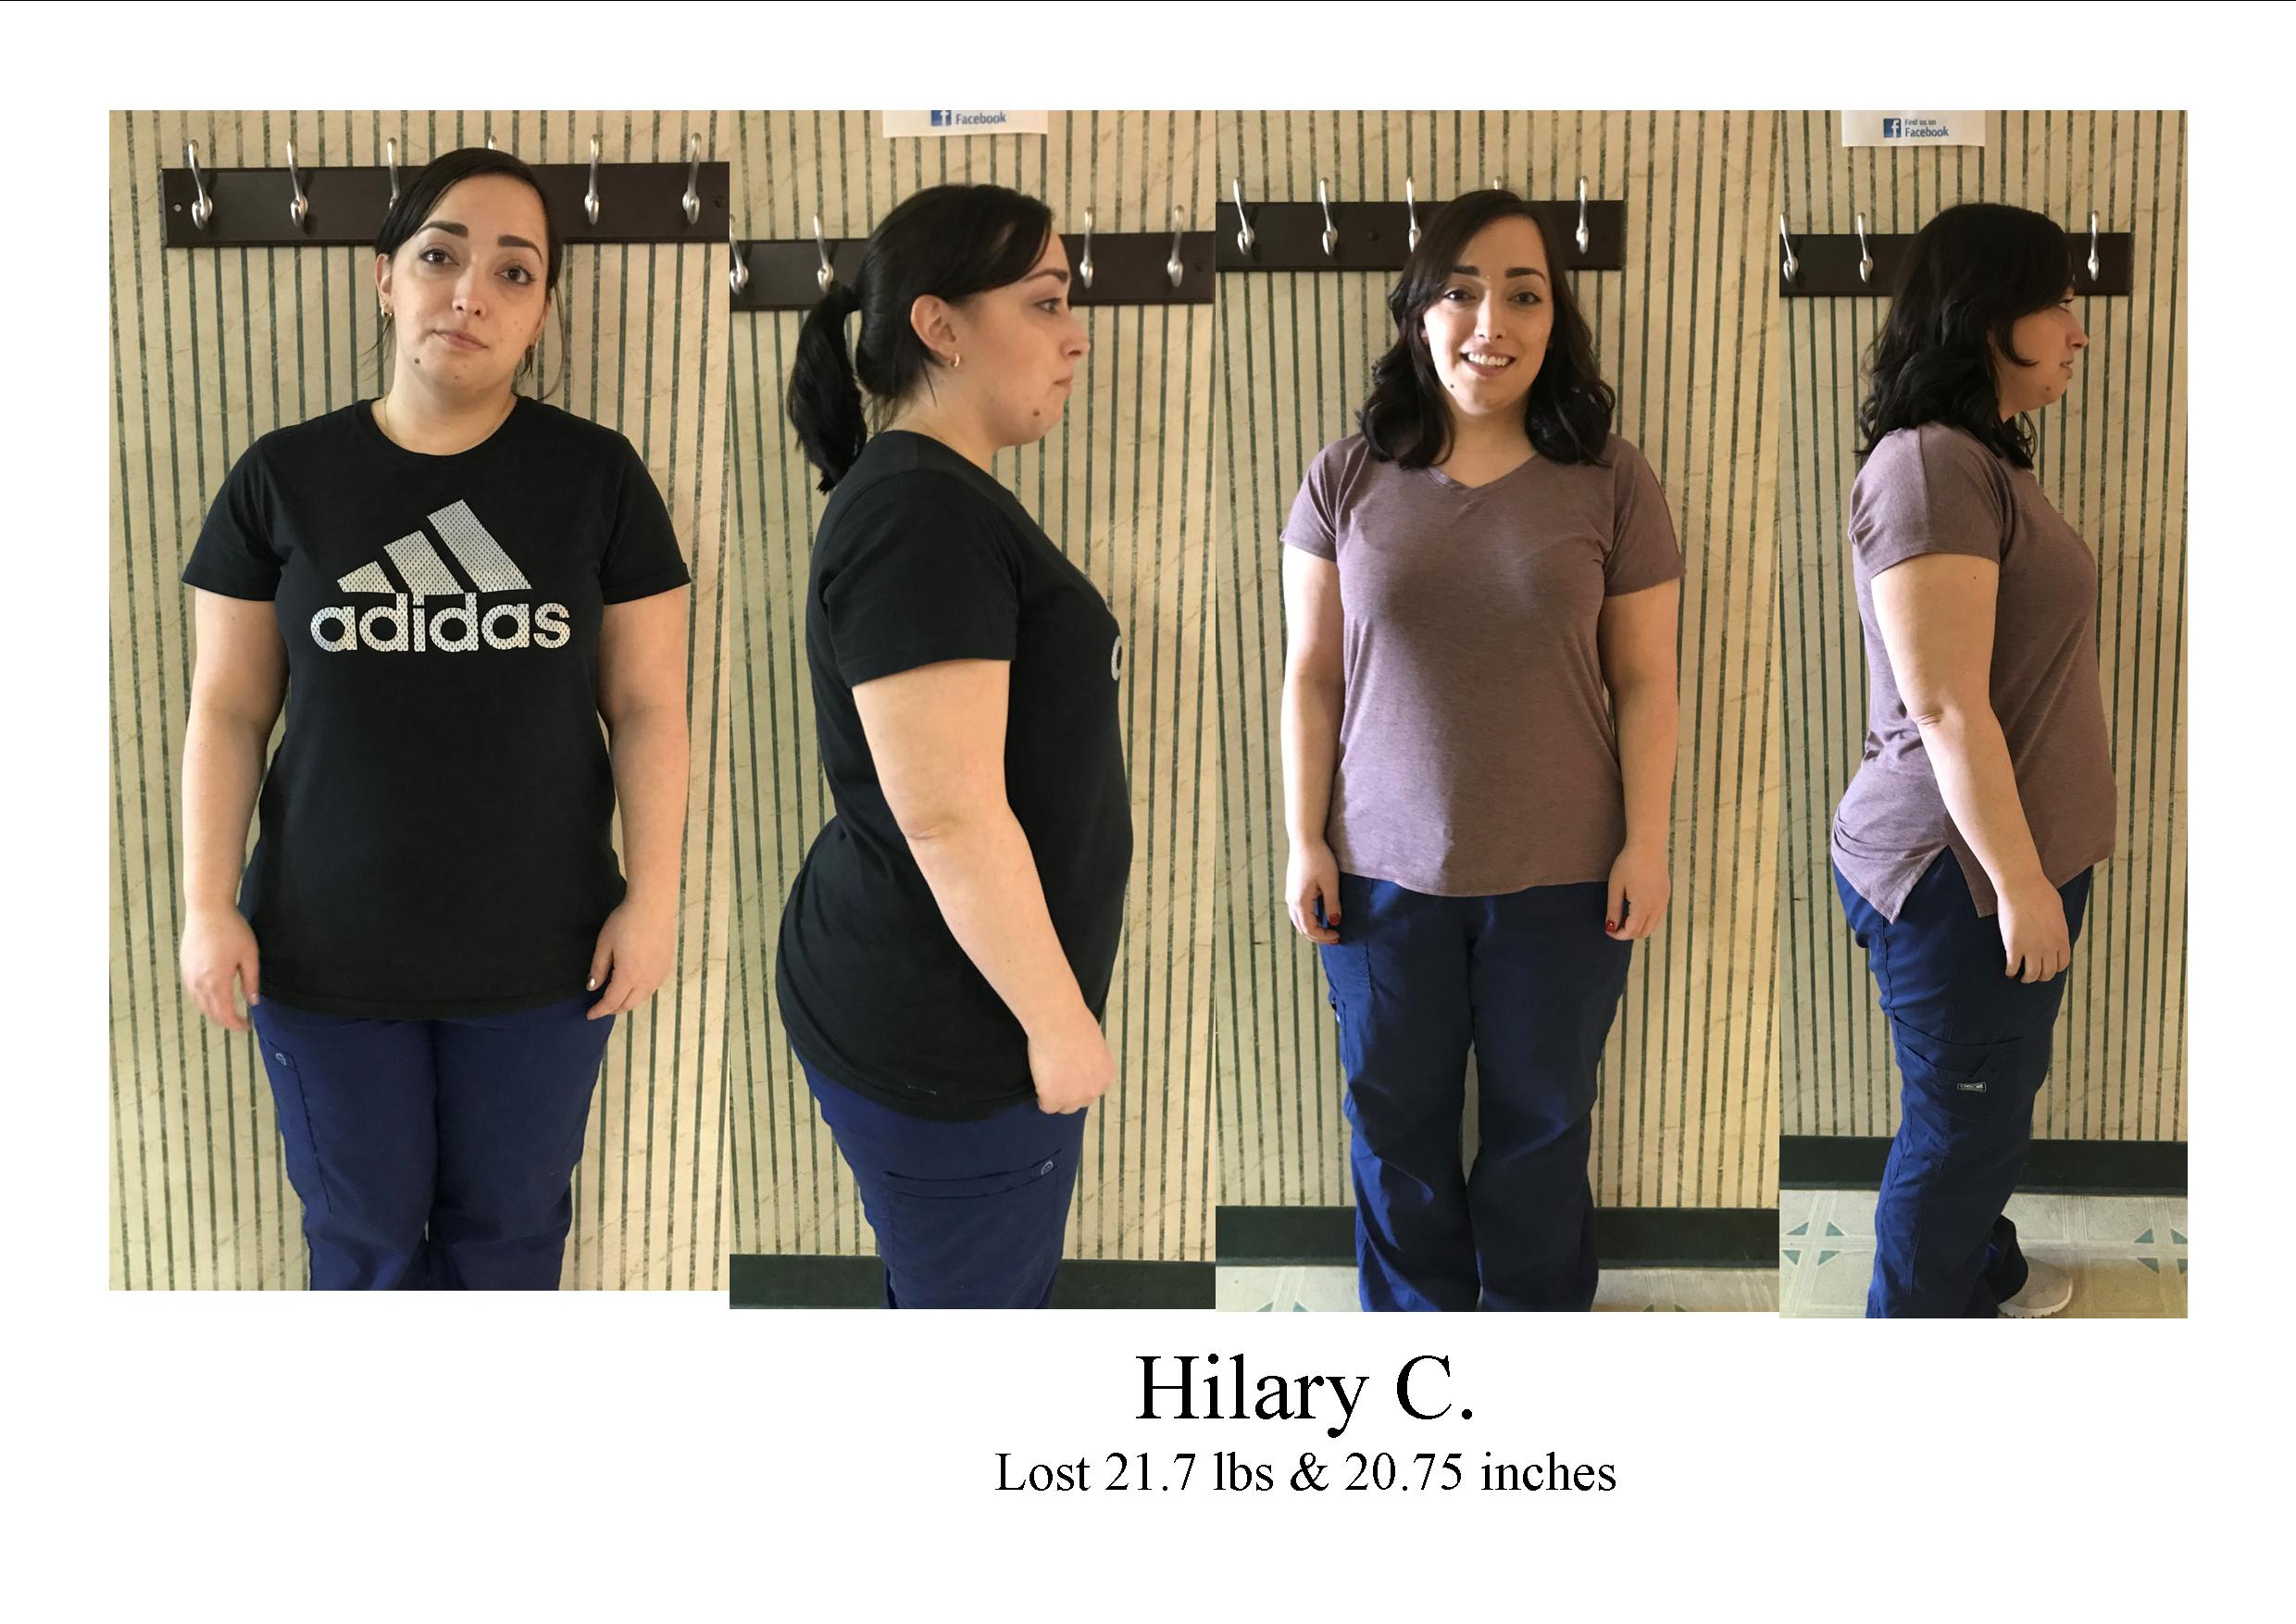 Weight Loss - Hilary C